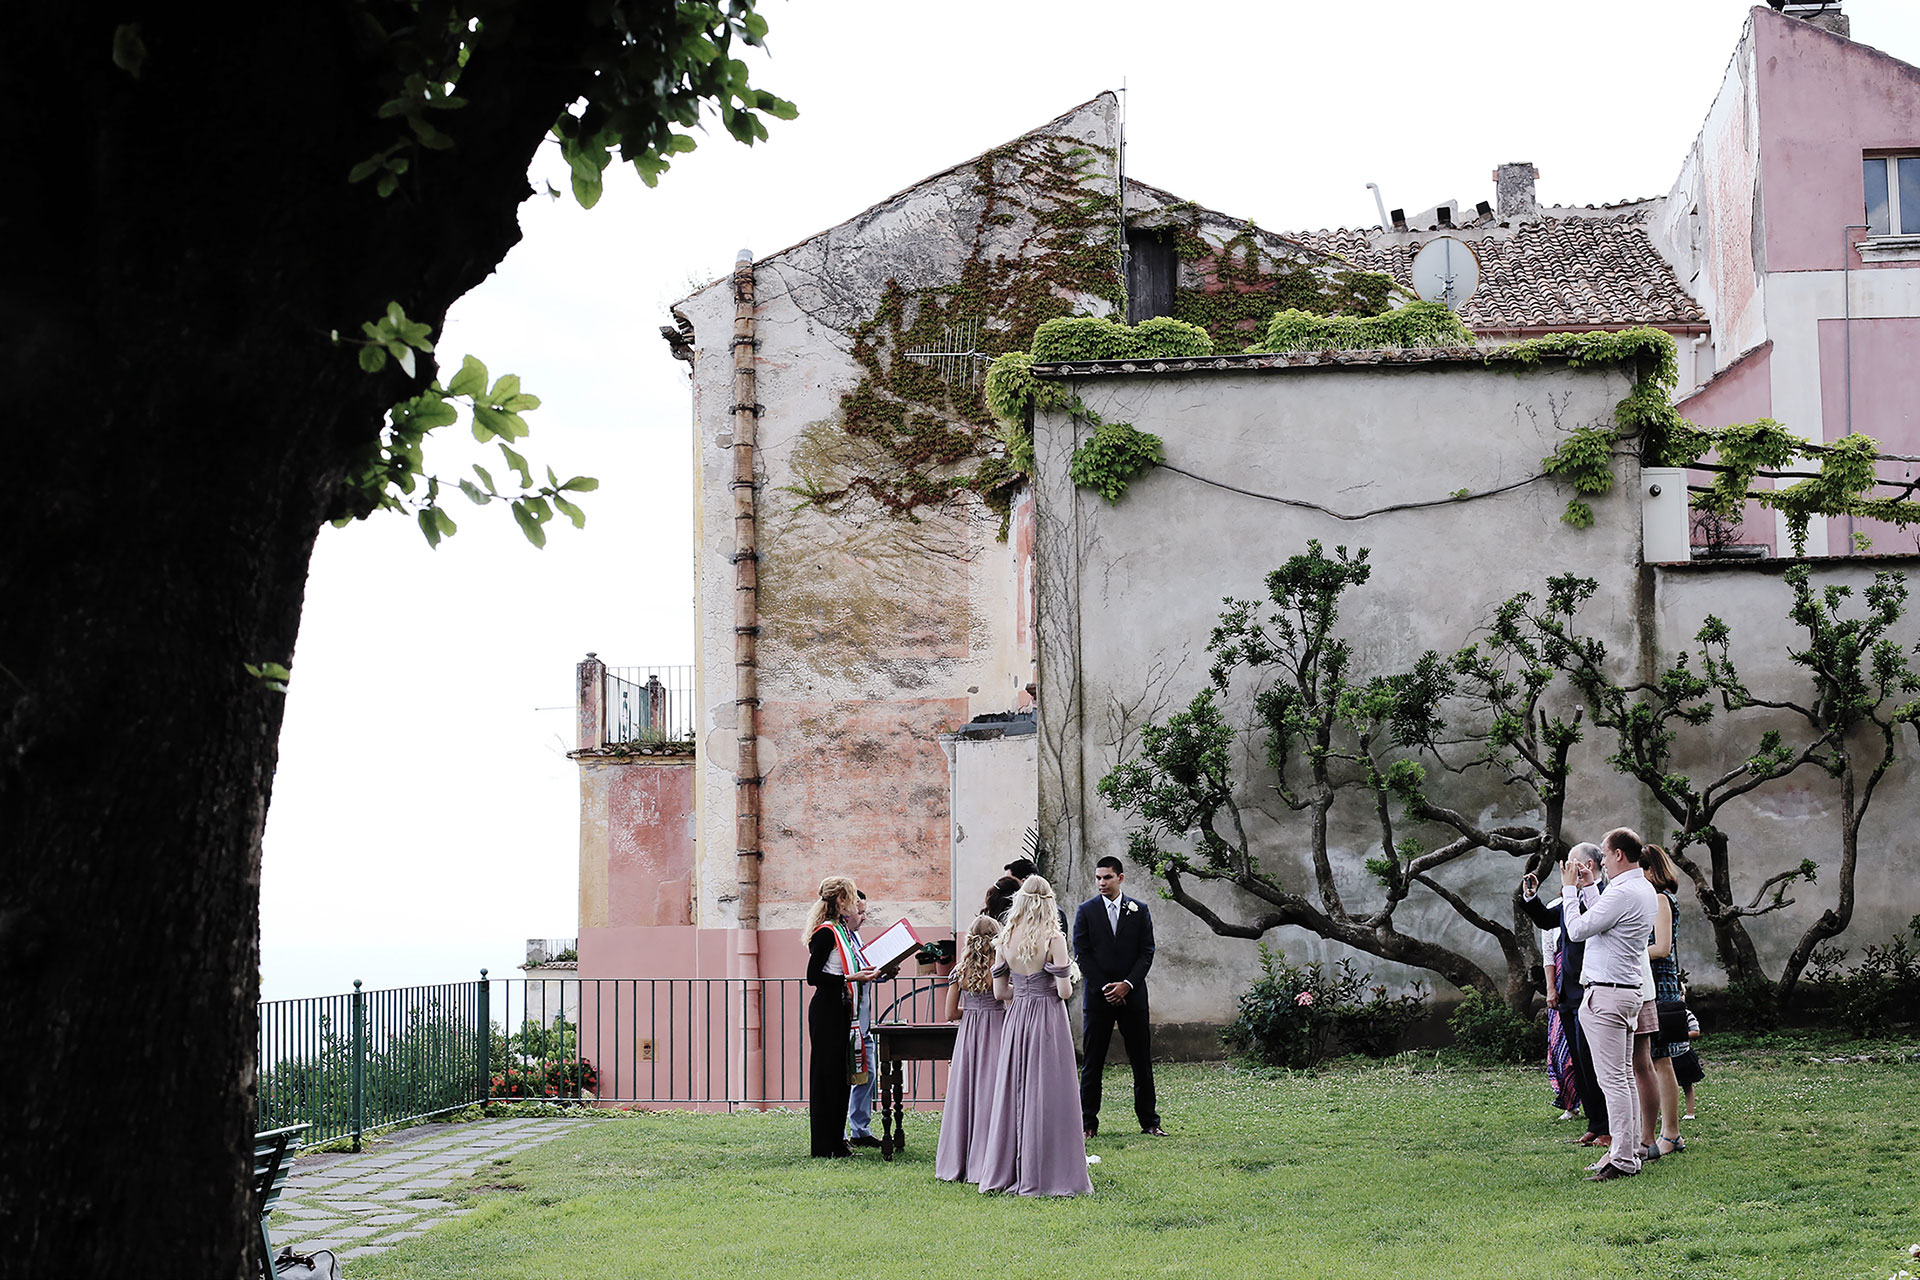 Civil Wedding in Ravello Giardini della Principessa di Piemonte Ravello Hotel Reception Location Amalfi Coast Luxury Accessible Wedding on Amalfi Coast Claudia Francese Photography Sisters